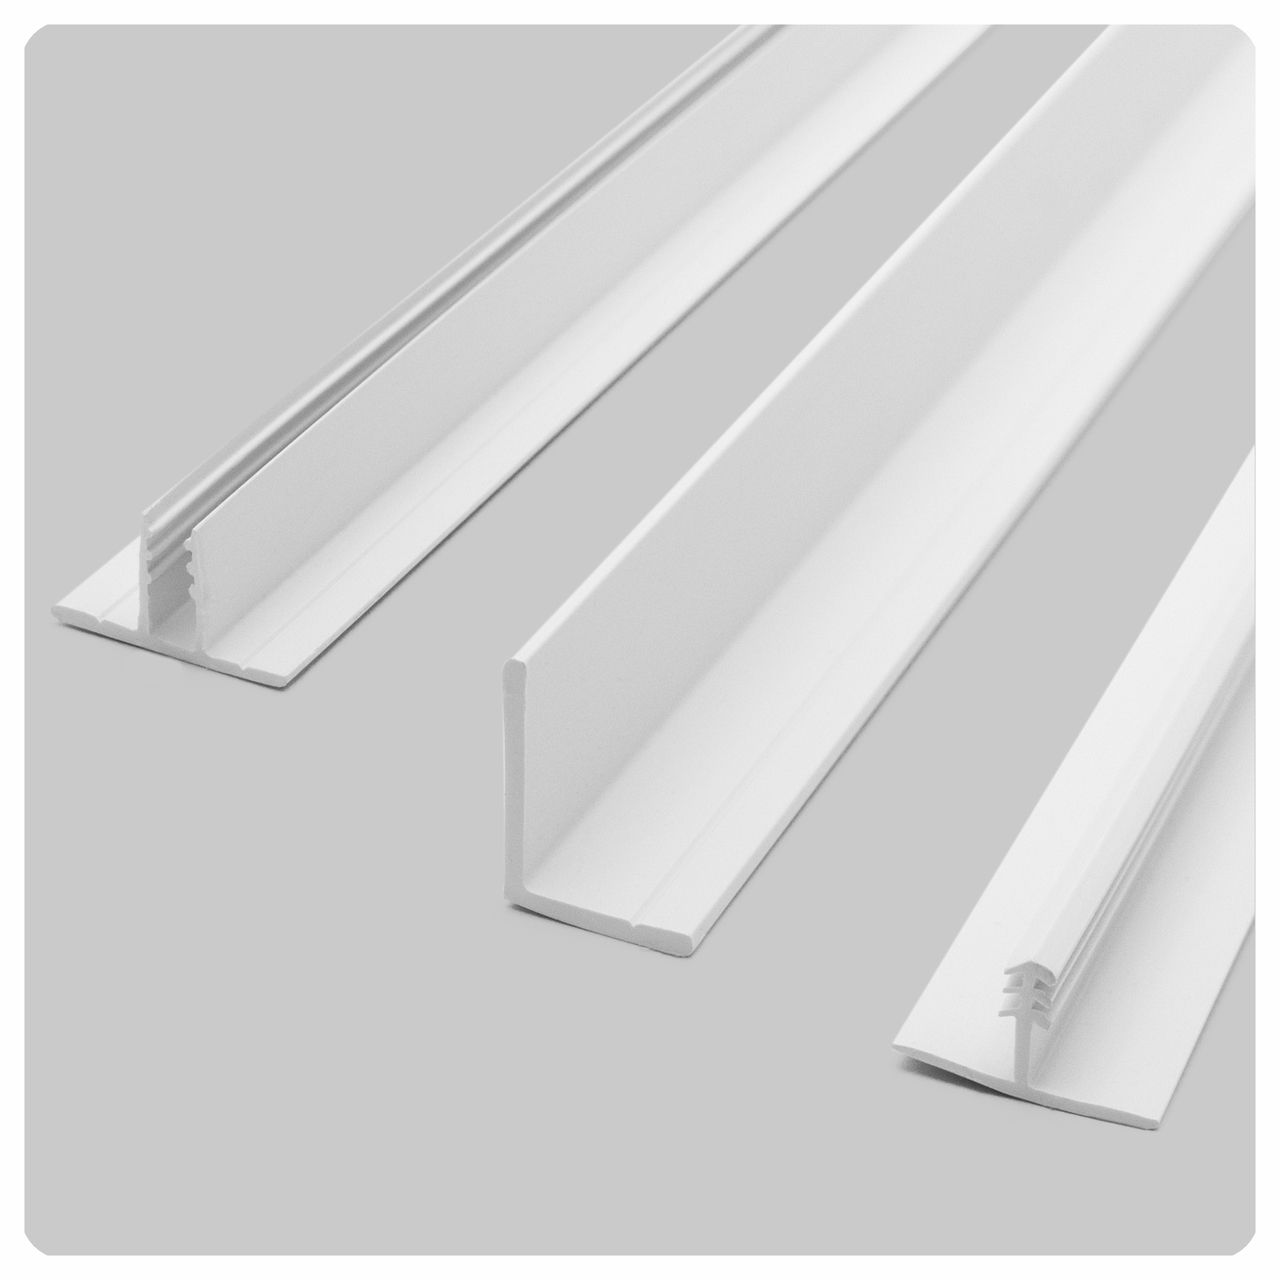 Ceilingconnex white direct mount ceiling grid kits 5577 http ceilingconnex white direct mount ceiling grid kits 5577 http dailygadgetfo Image collections